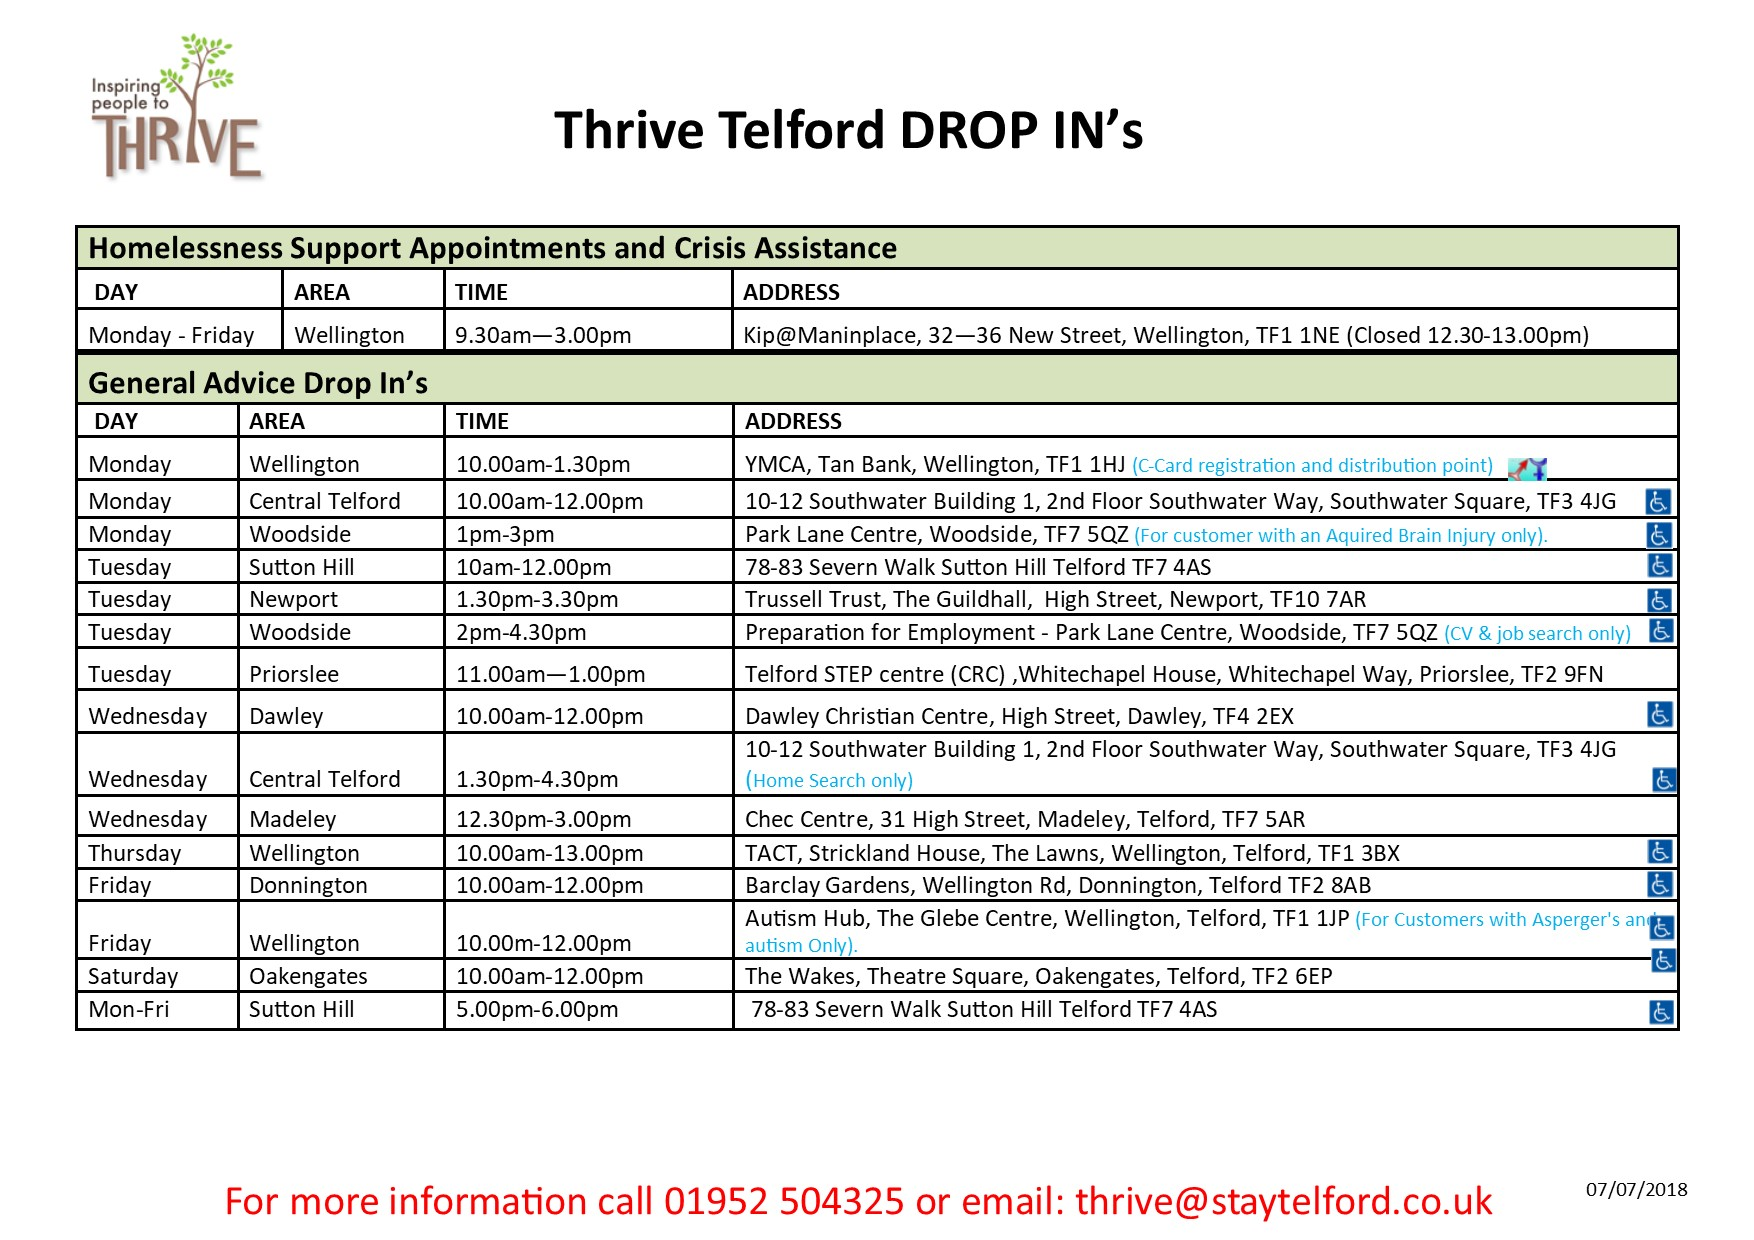 Thrive-Drop-ins-July-2018.jpg